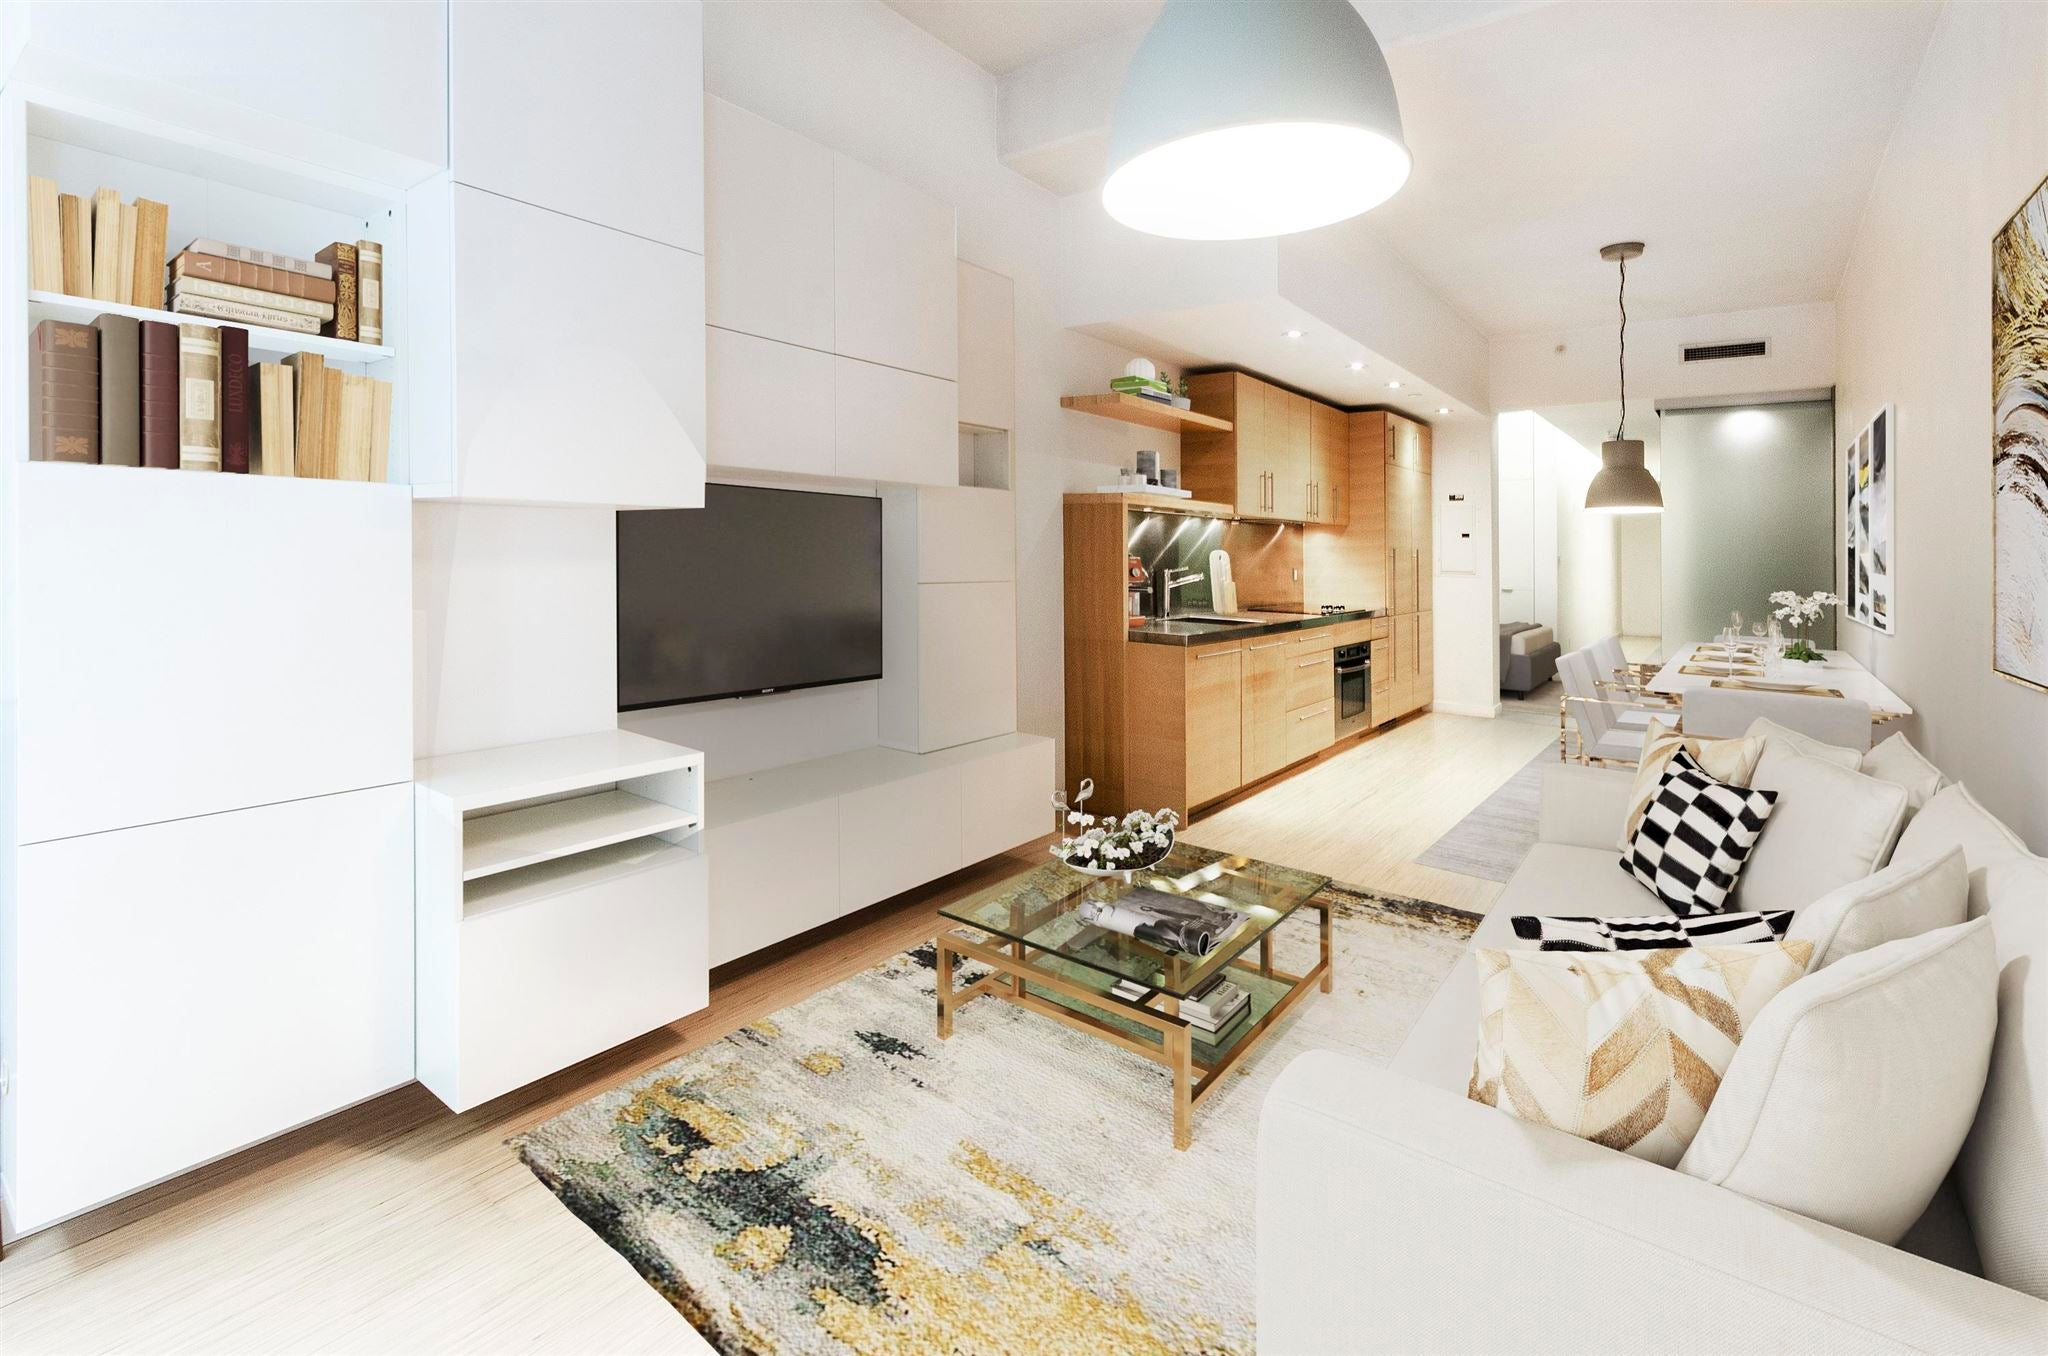 202 36 WATER STREET - Downtown VW Apartment/Condo for sale, 1 Bedroom (R2617552) - #1